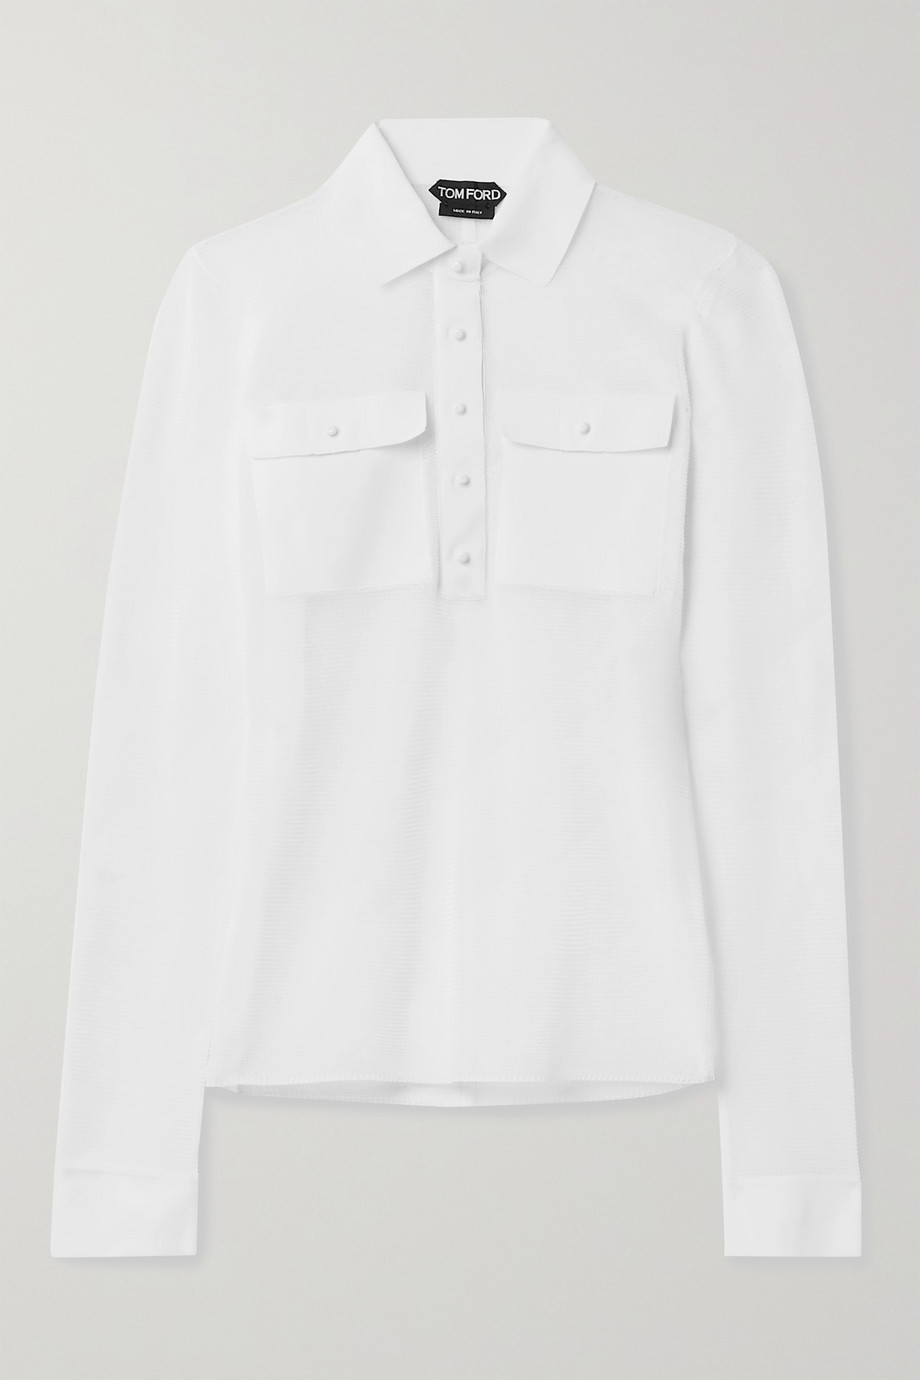 TOM FORD Cotton-blend polo shirt